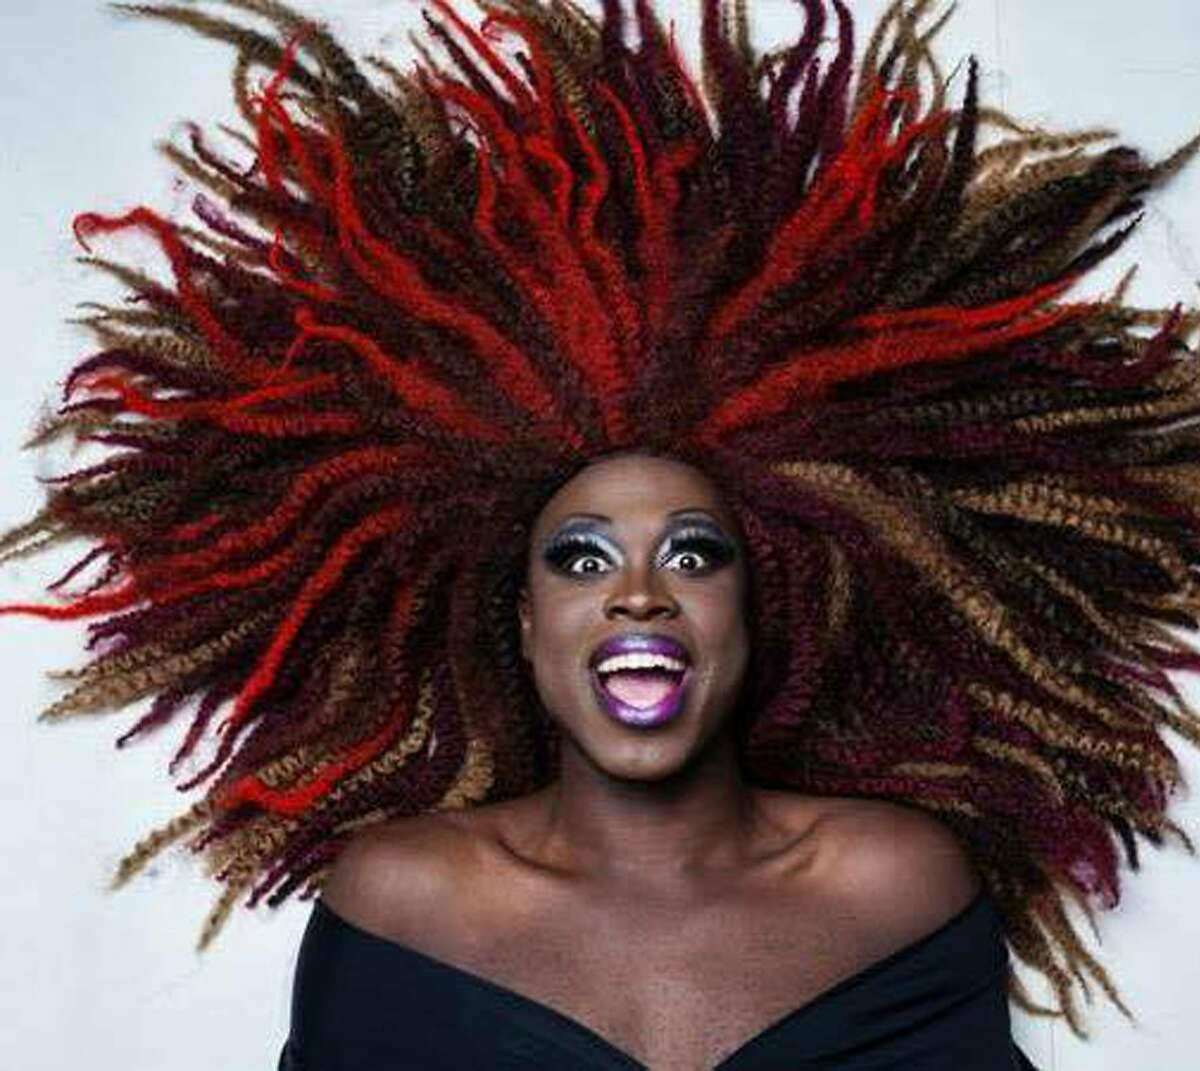 Bob the Drag Queen, winner of Season 8 on RuPaul's Drag Race, will perform at the Drag Queens of Comedy in San Francisco on May 28. His first drag name was